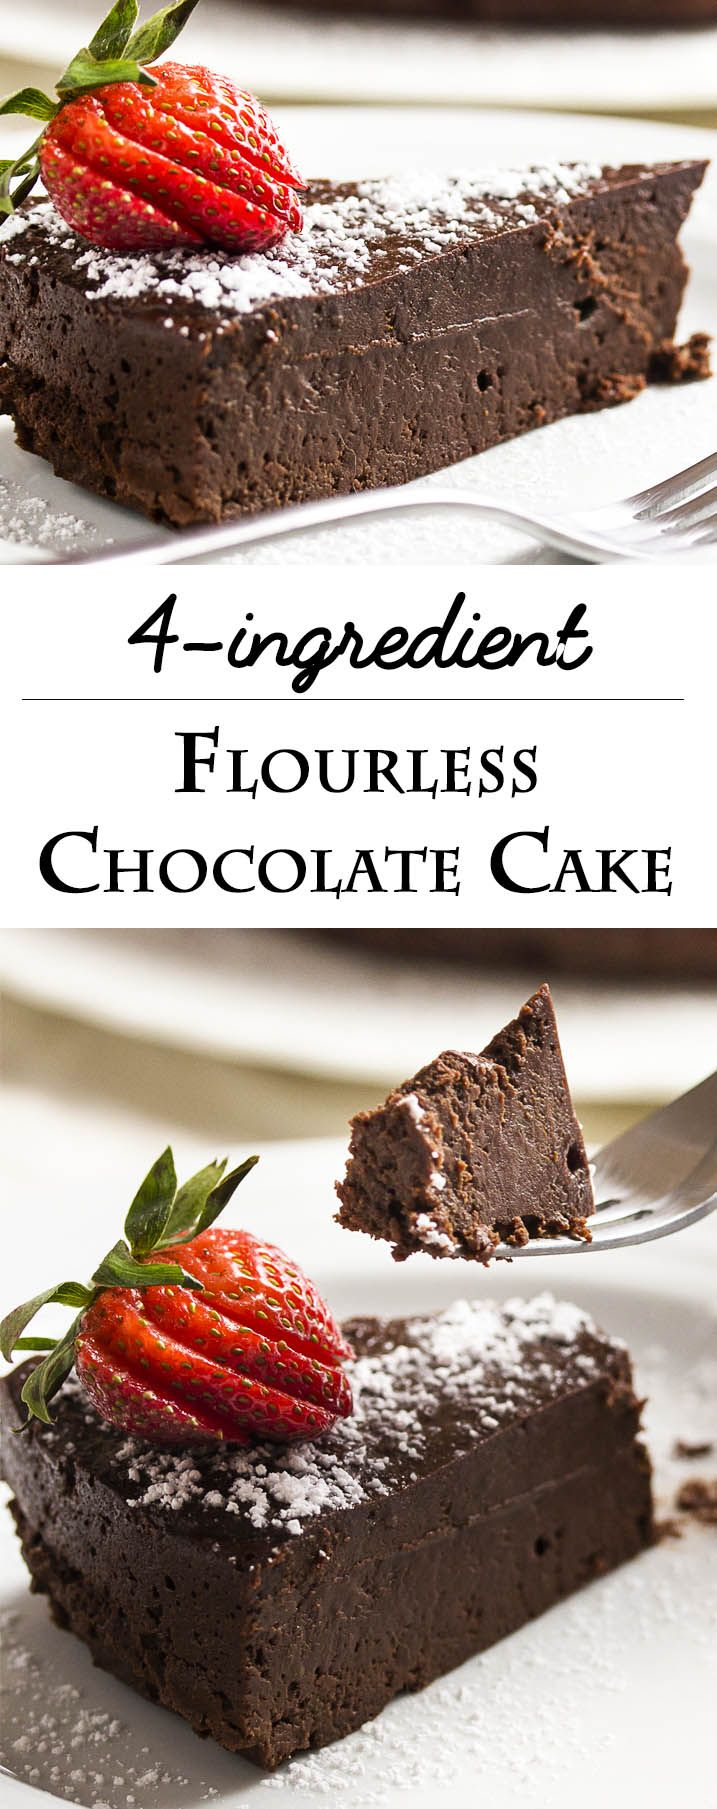 This easy flourless chocolate cake is amazingly dense, rich and decadent. Every bite is packed with intense bittersweet chocolate flavor.